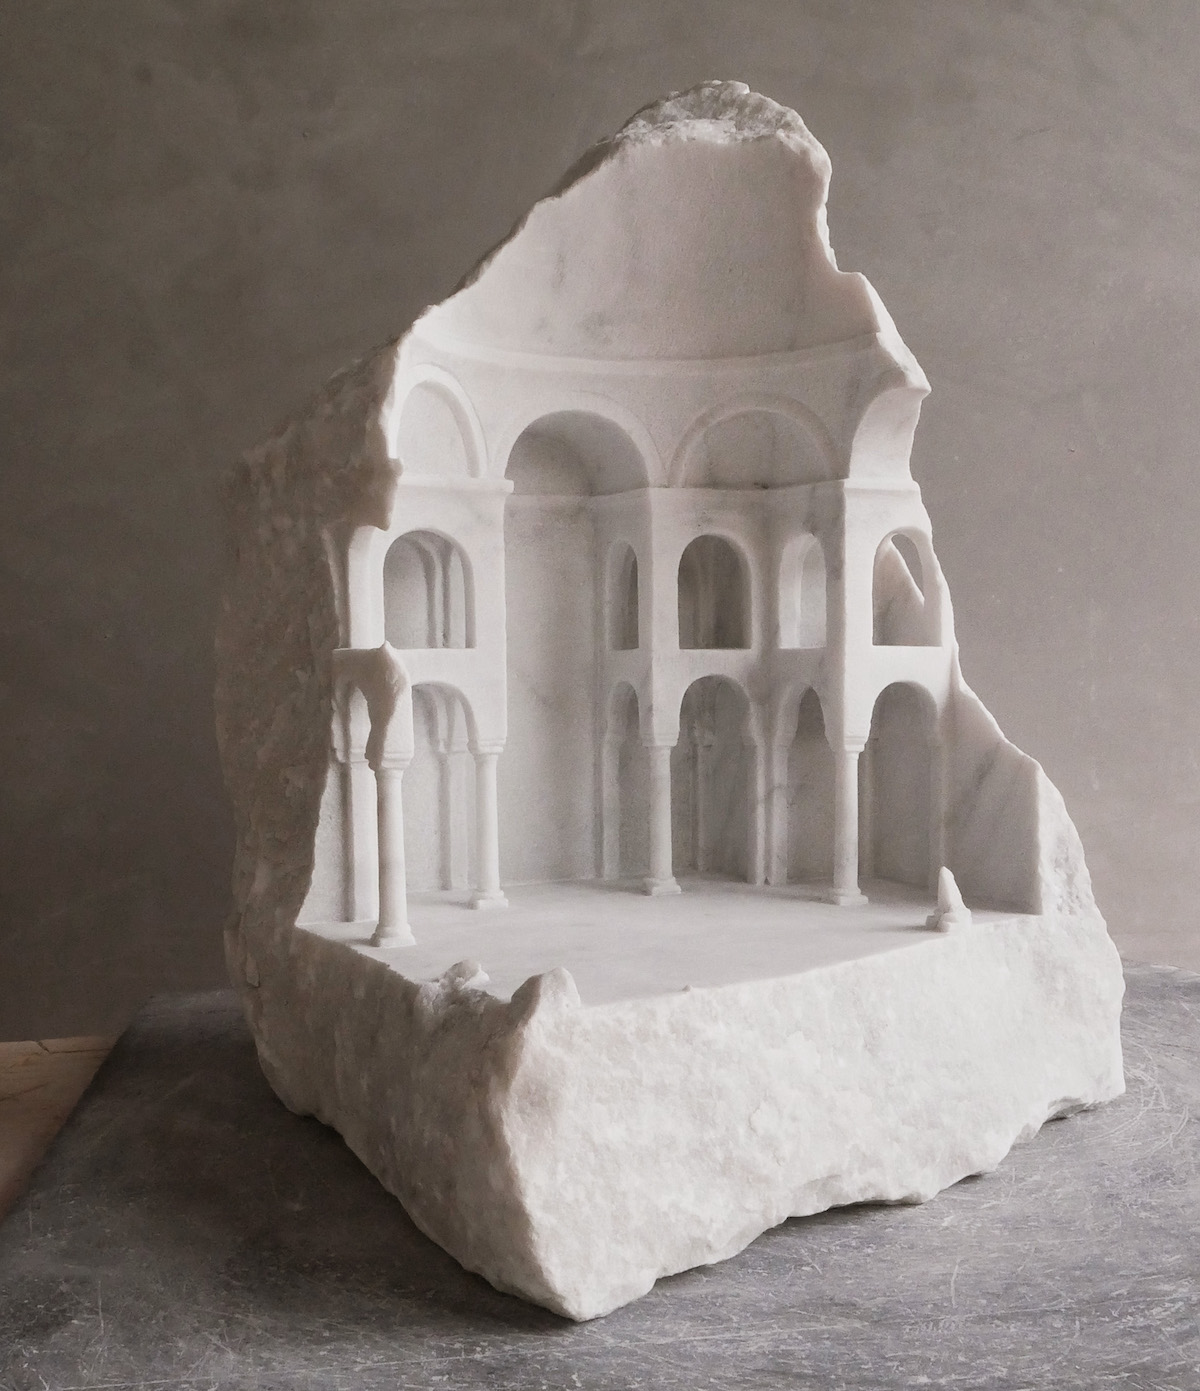 Stone Carving by Matthew Simmonds